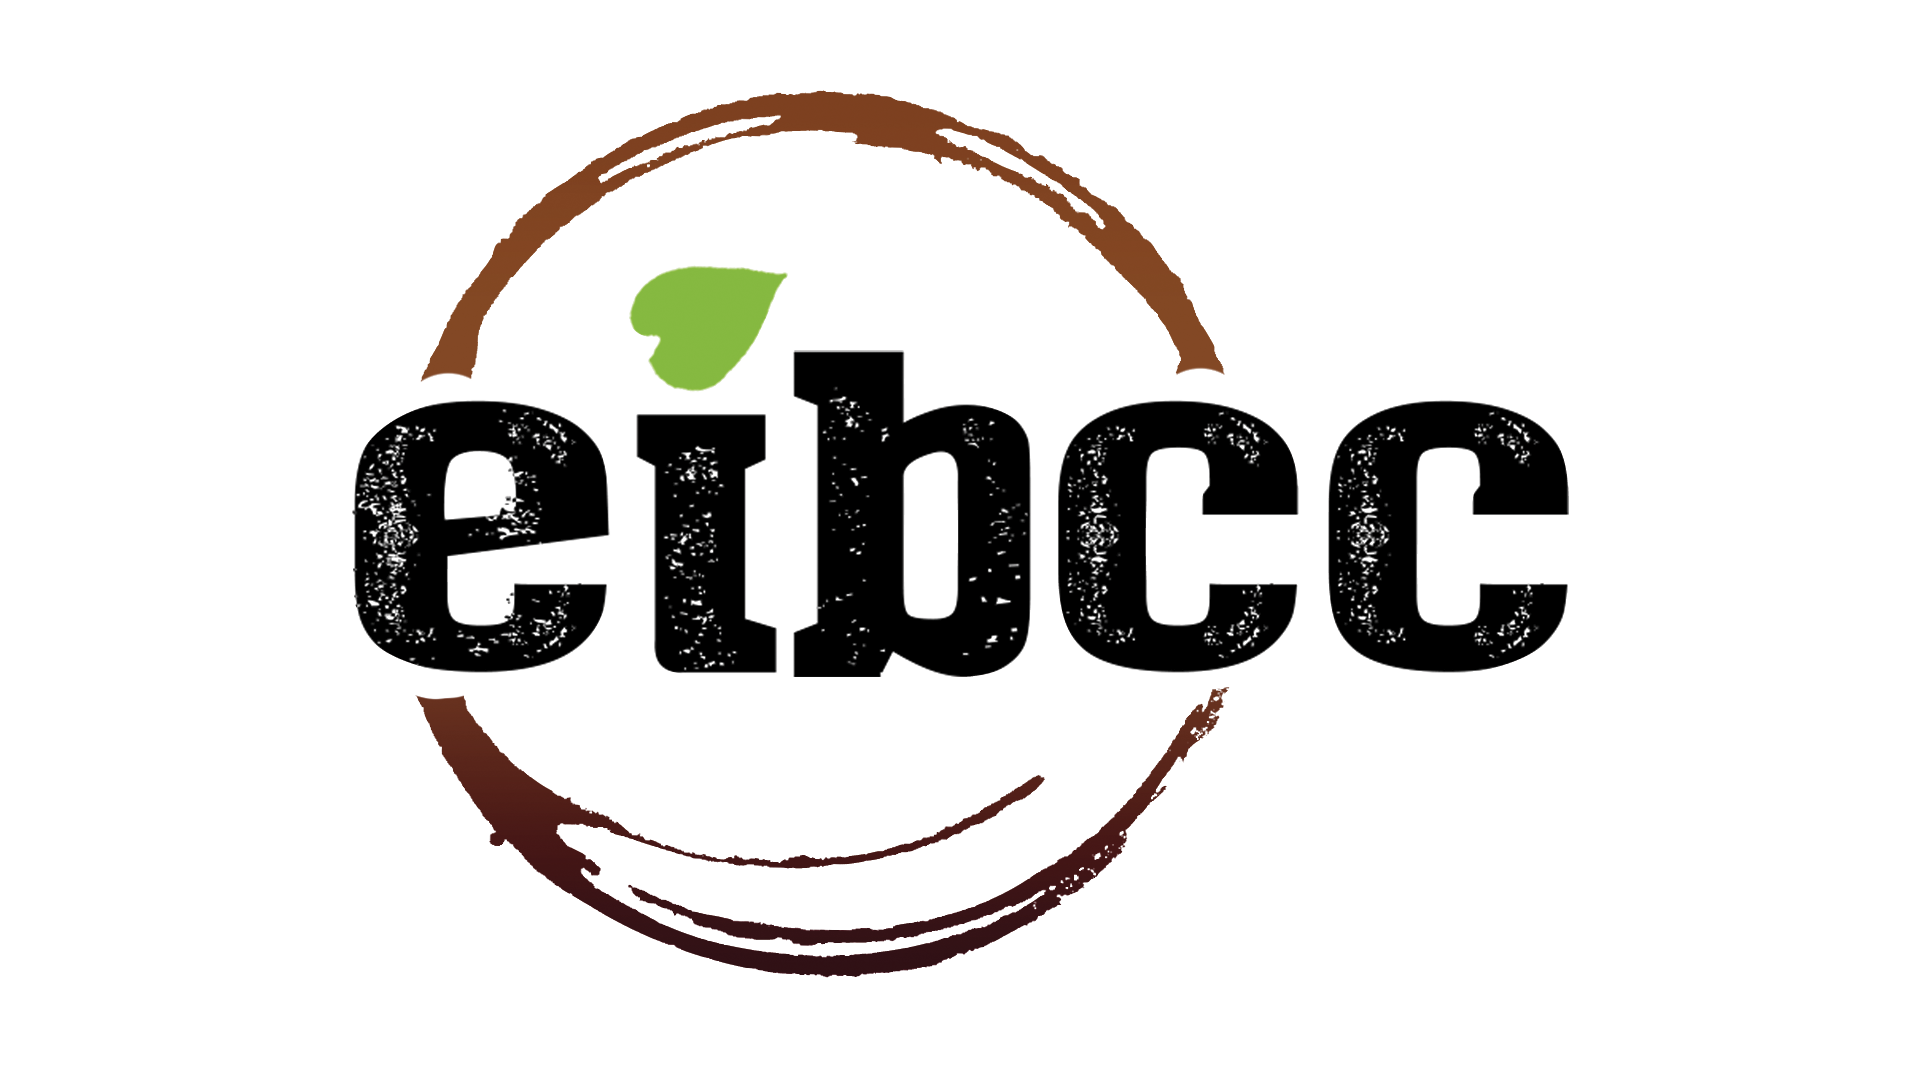 eibcc vector colored